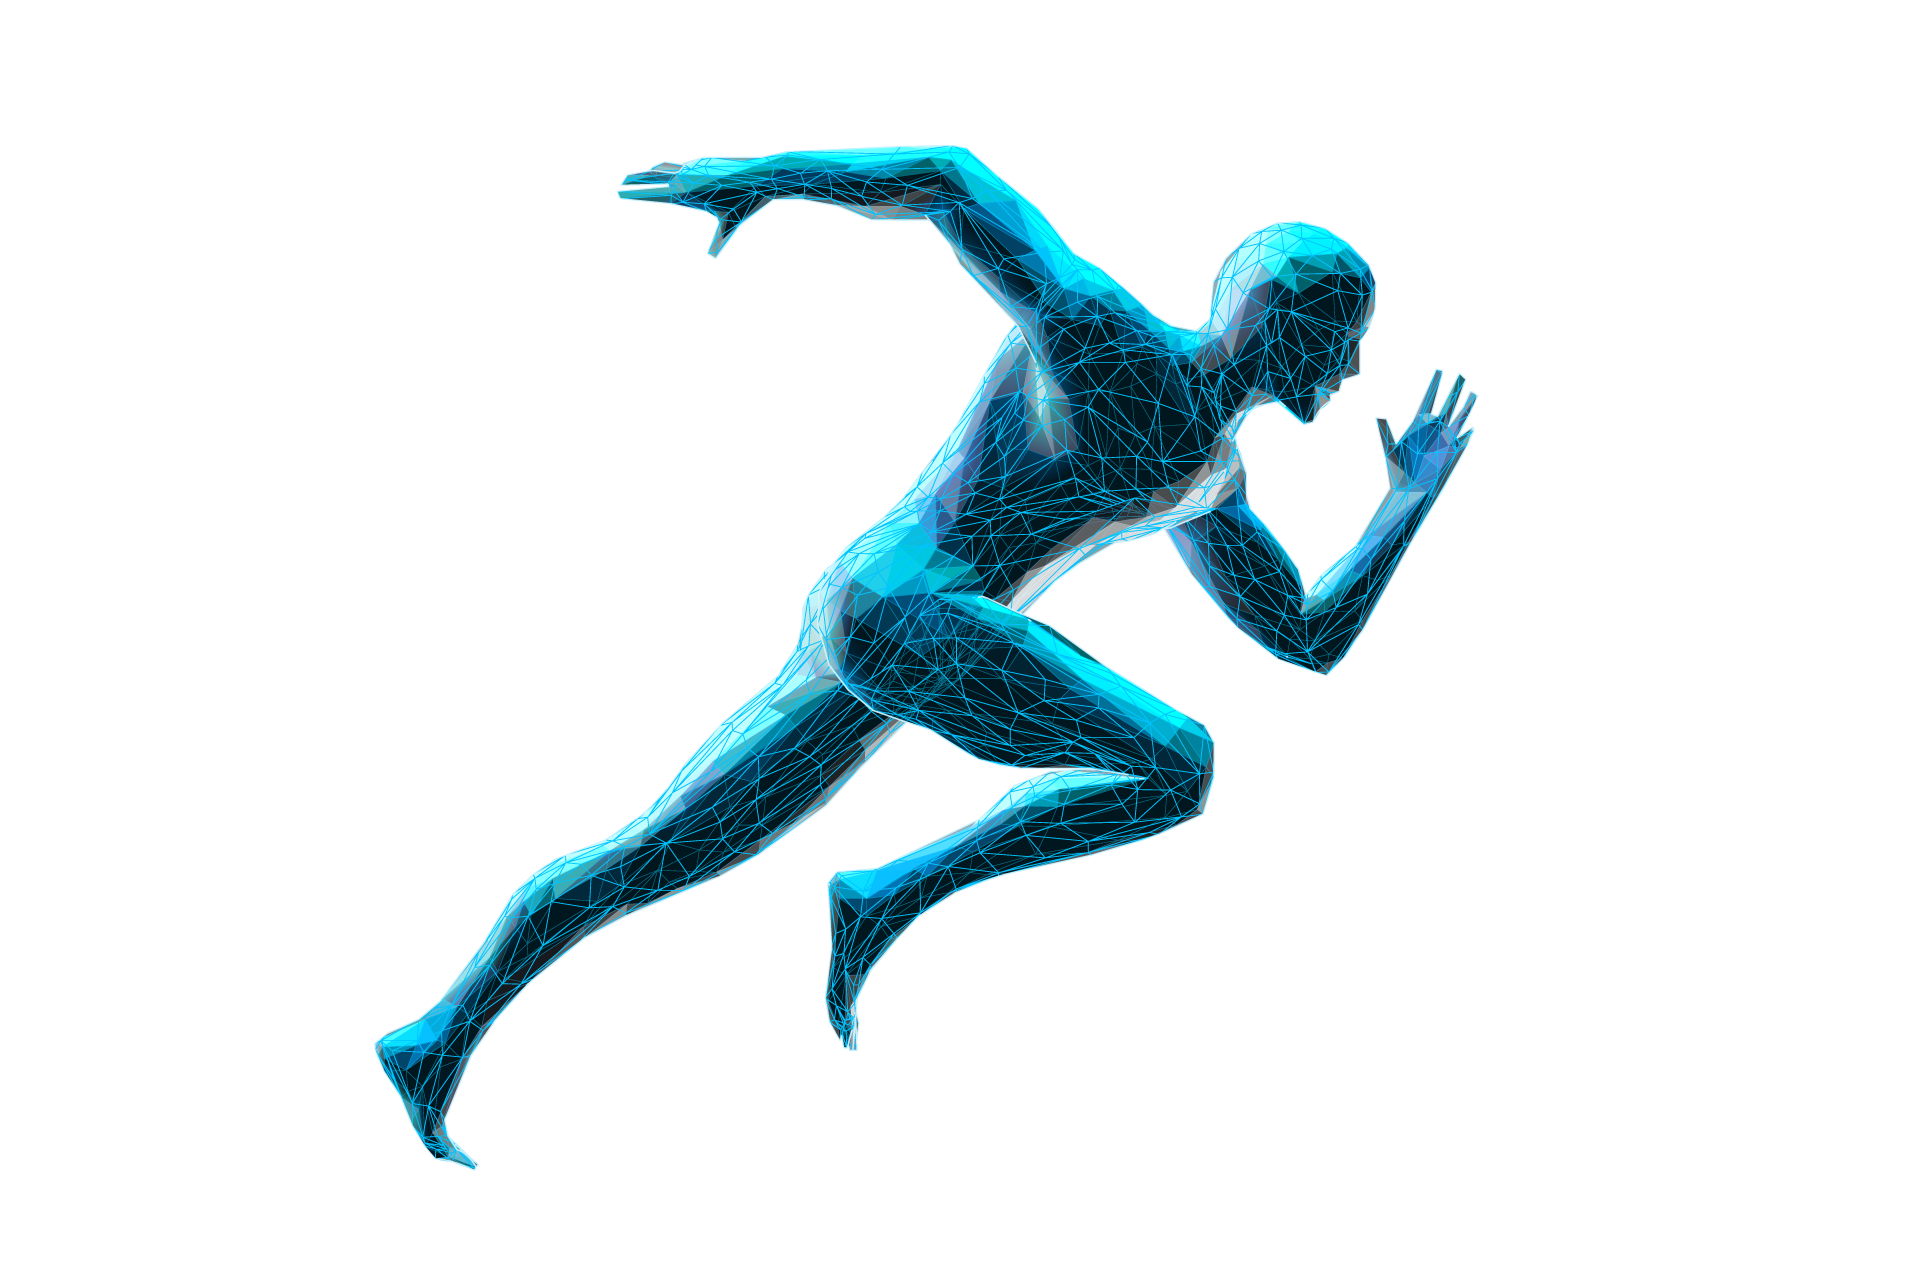 Geometric running figure